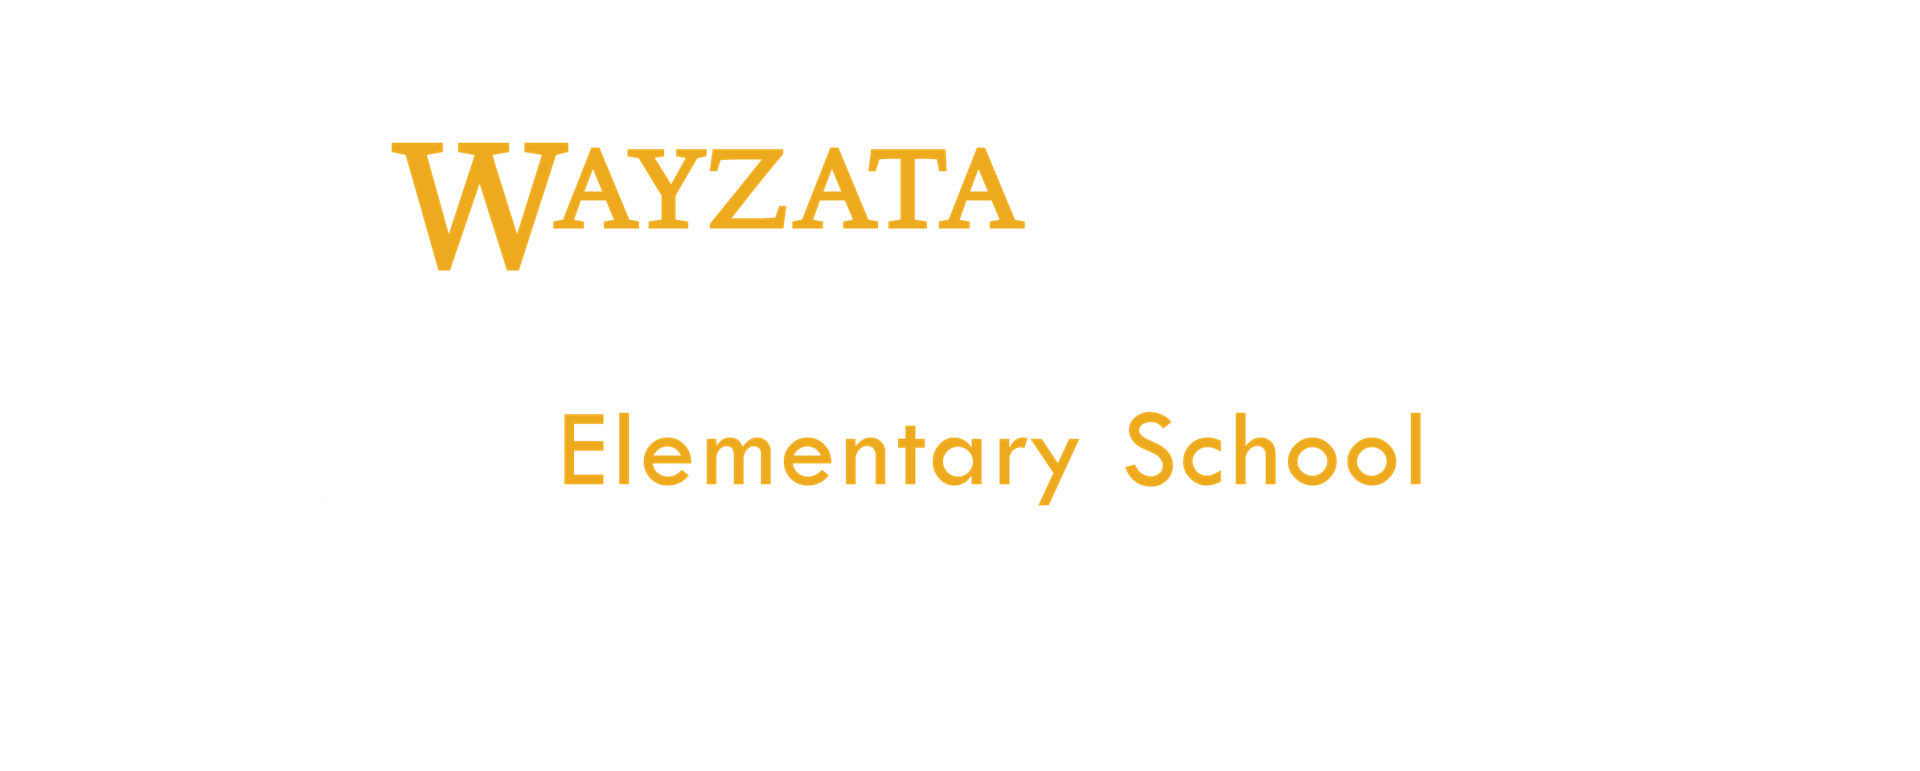 Kimberly Lane Elementary School